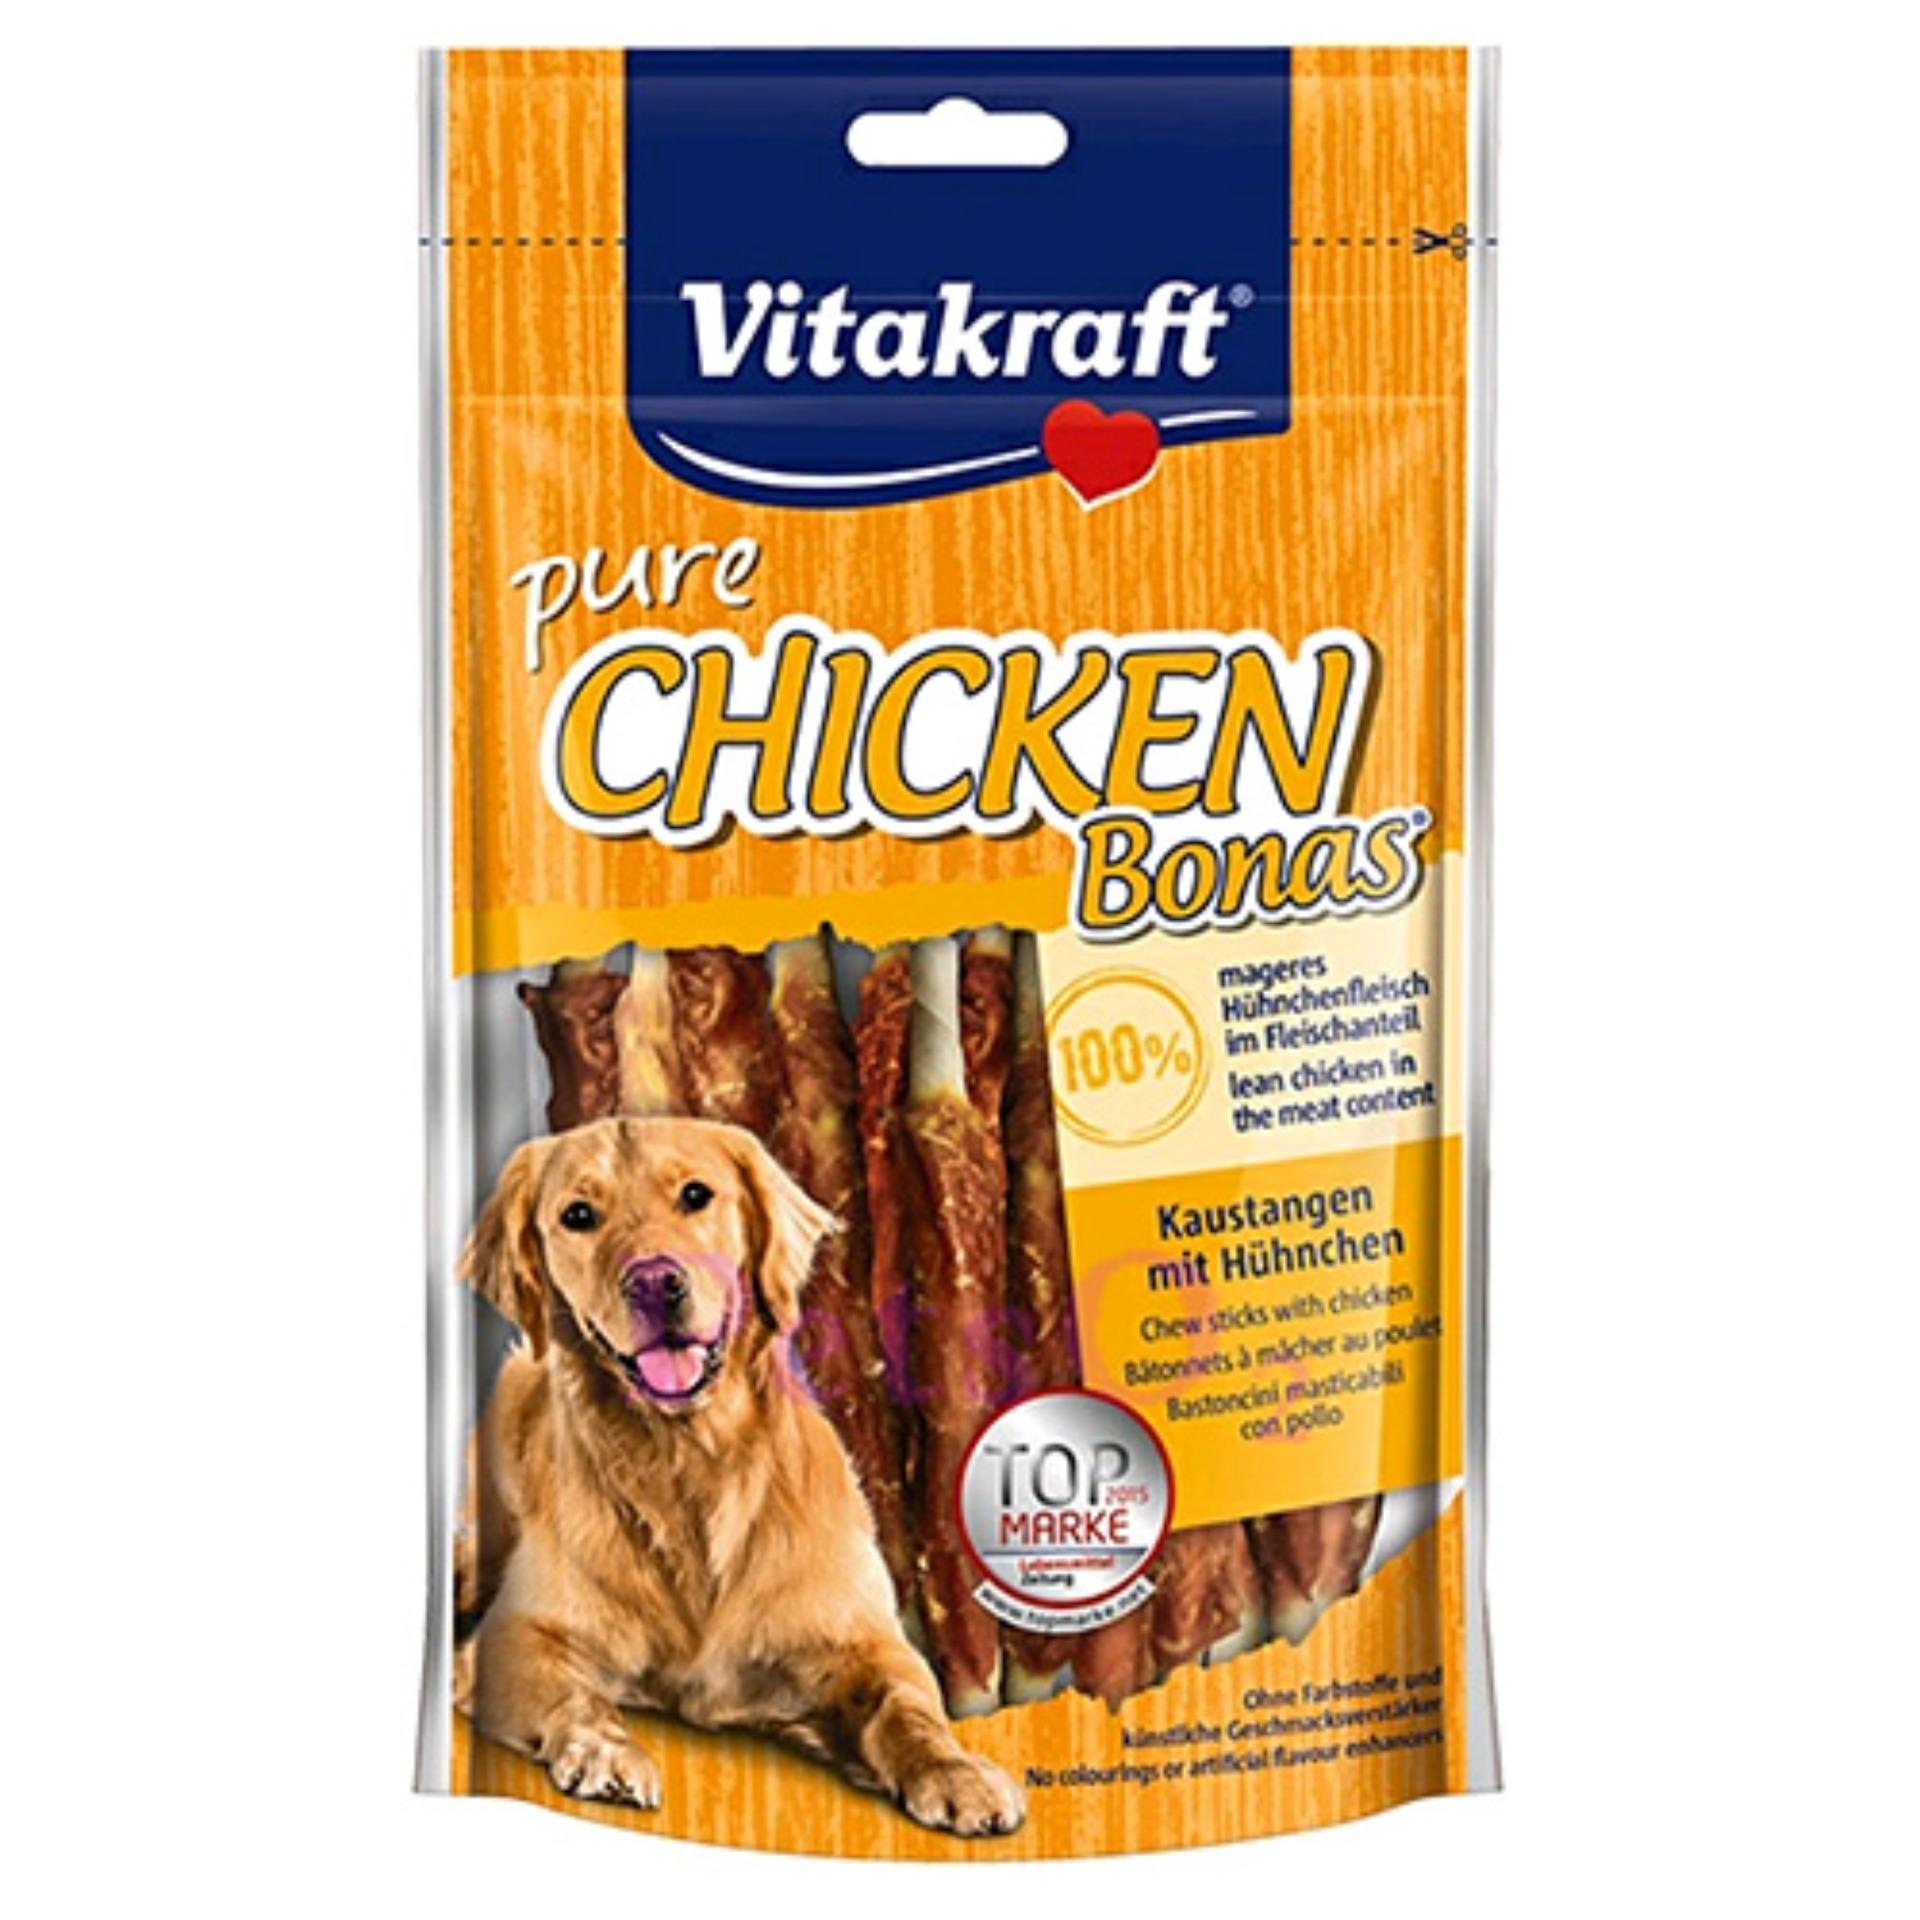 Vitakraft Chicken Bonas 80g (Buy 1 Get 1 Free)